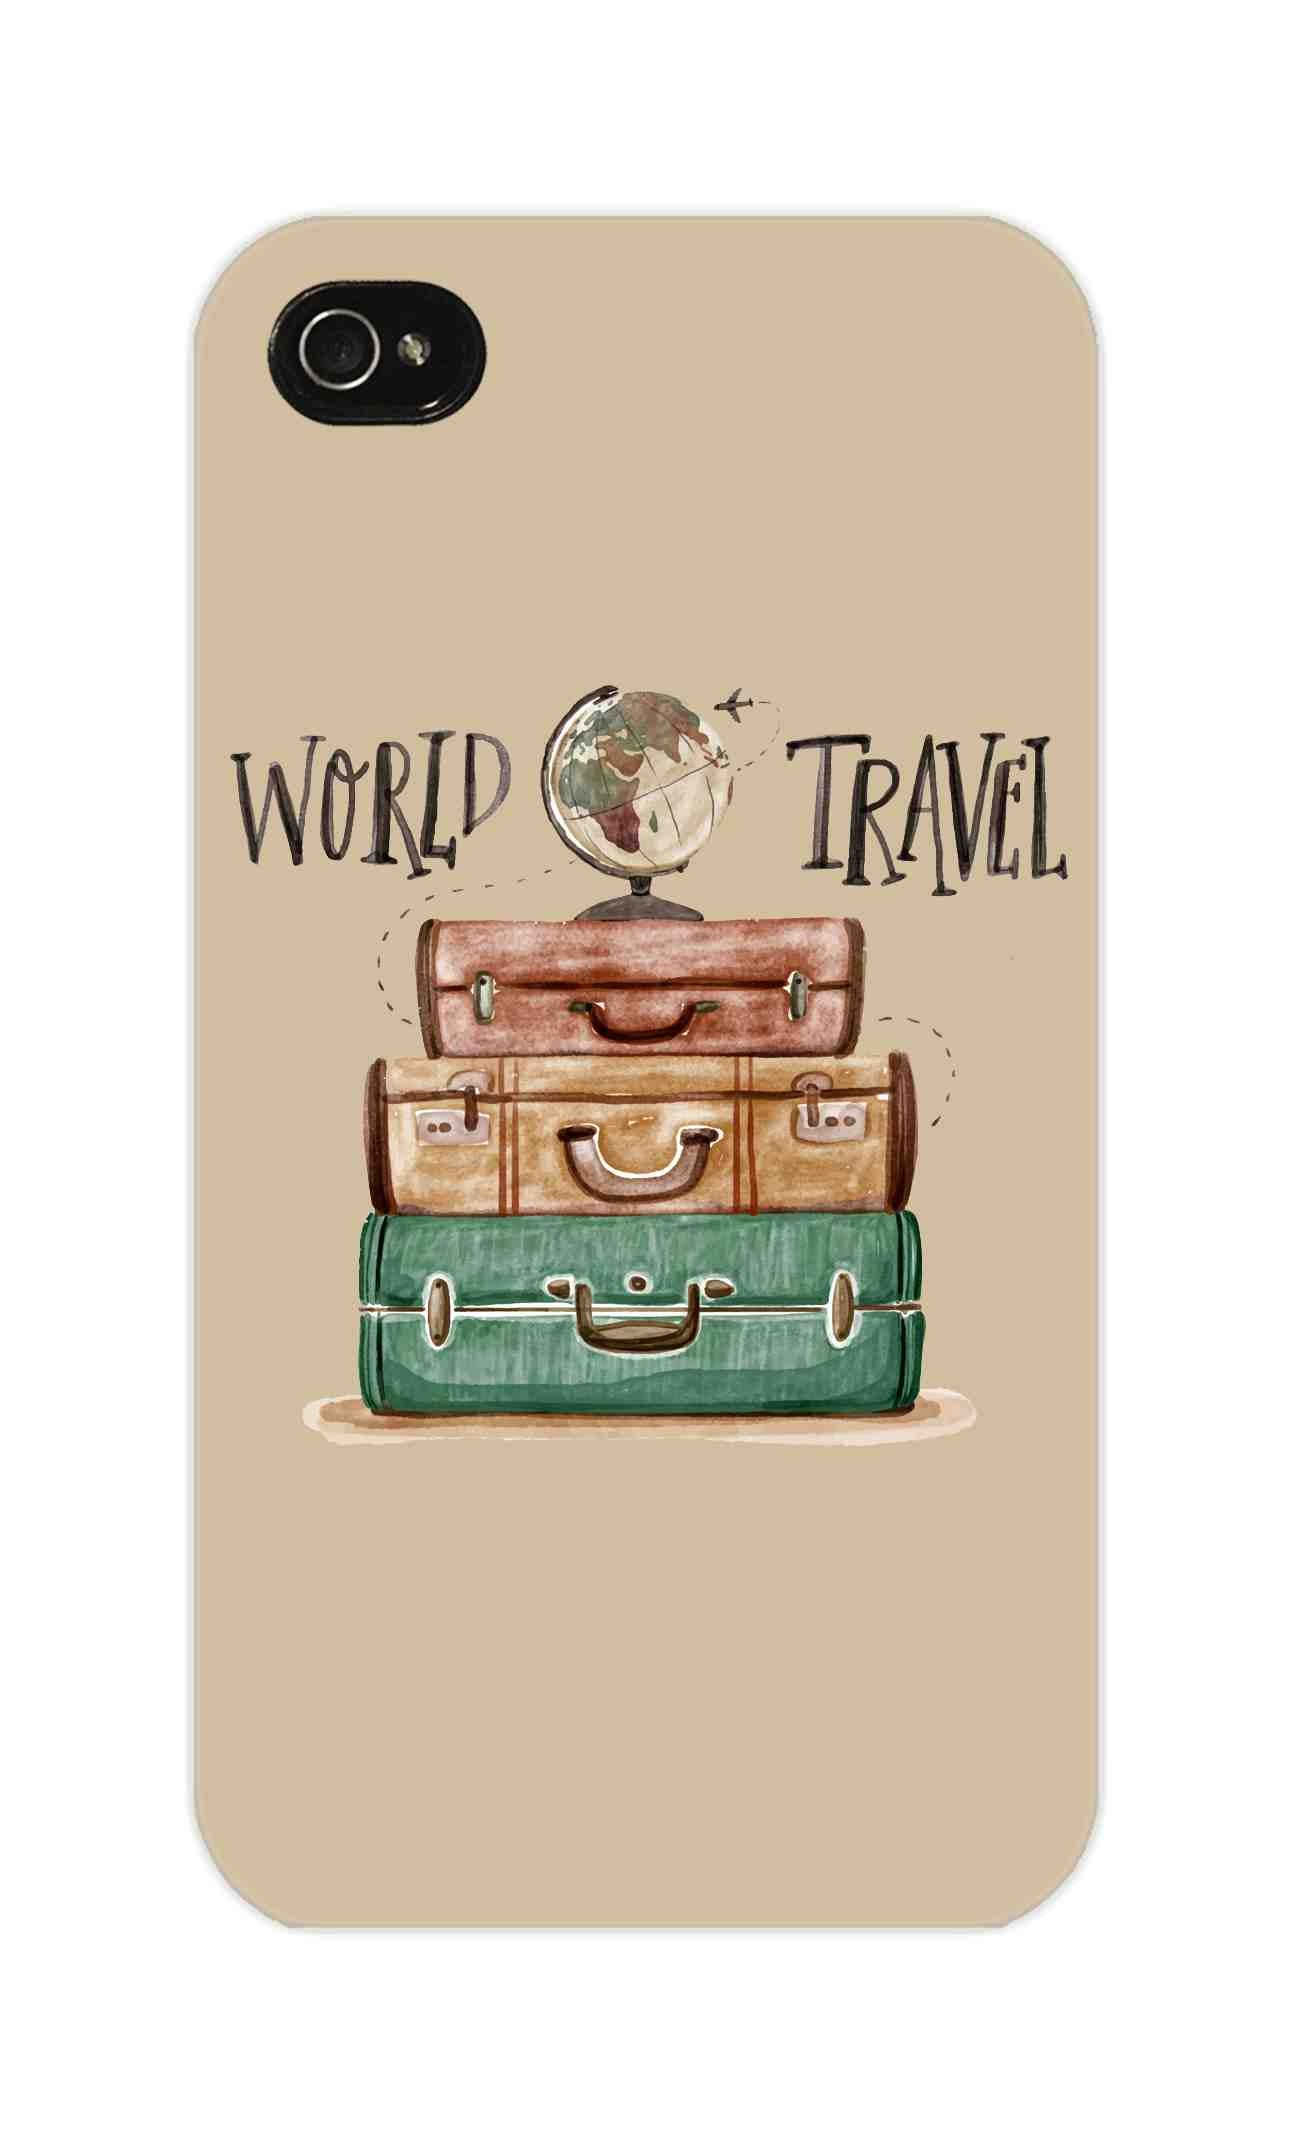 Travel World With Bags For Travellers iPhone 4 Mobile Cover Case - MADANYU